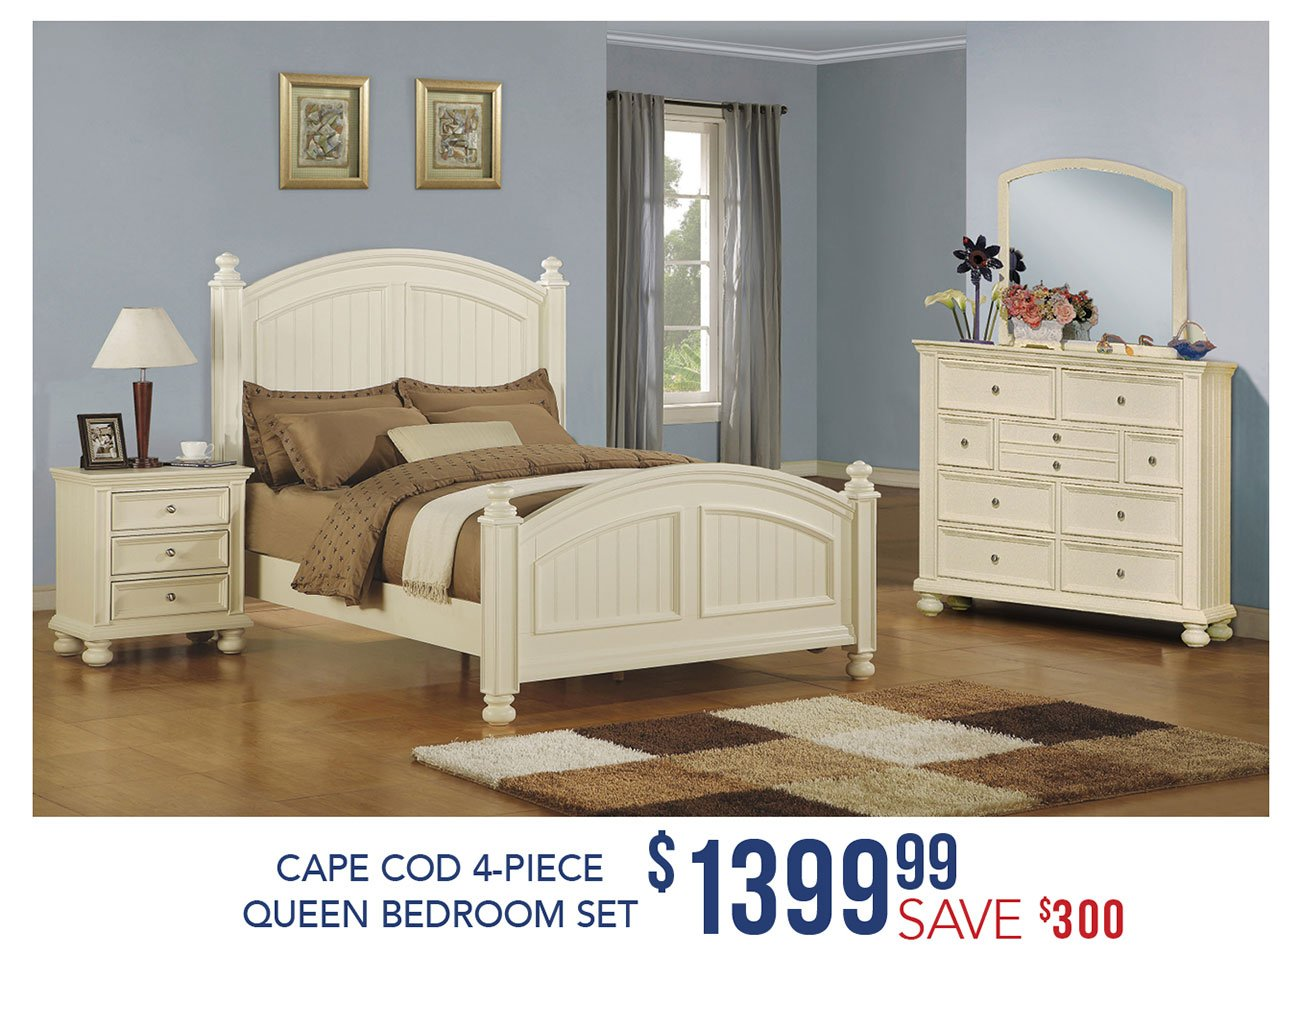 Cape-cod-queen-bedroom-set